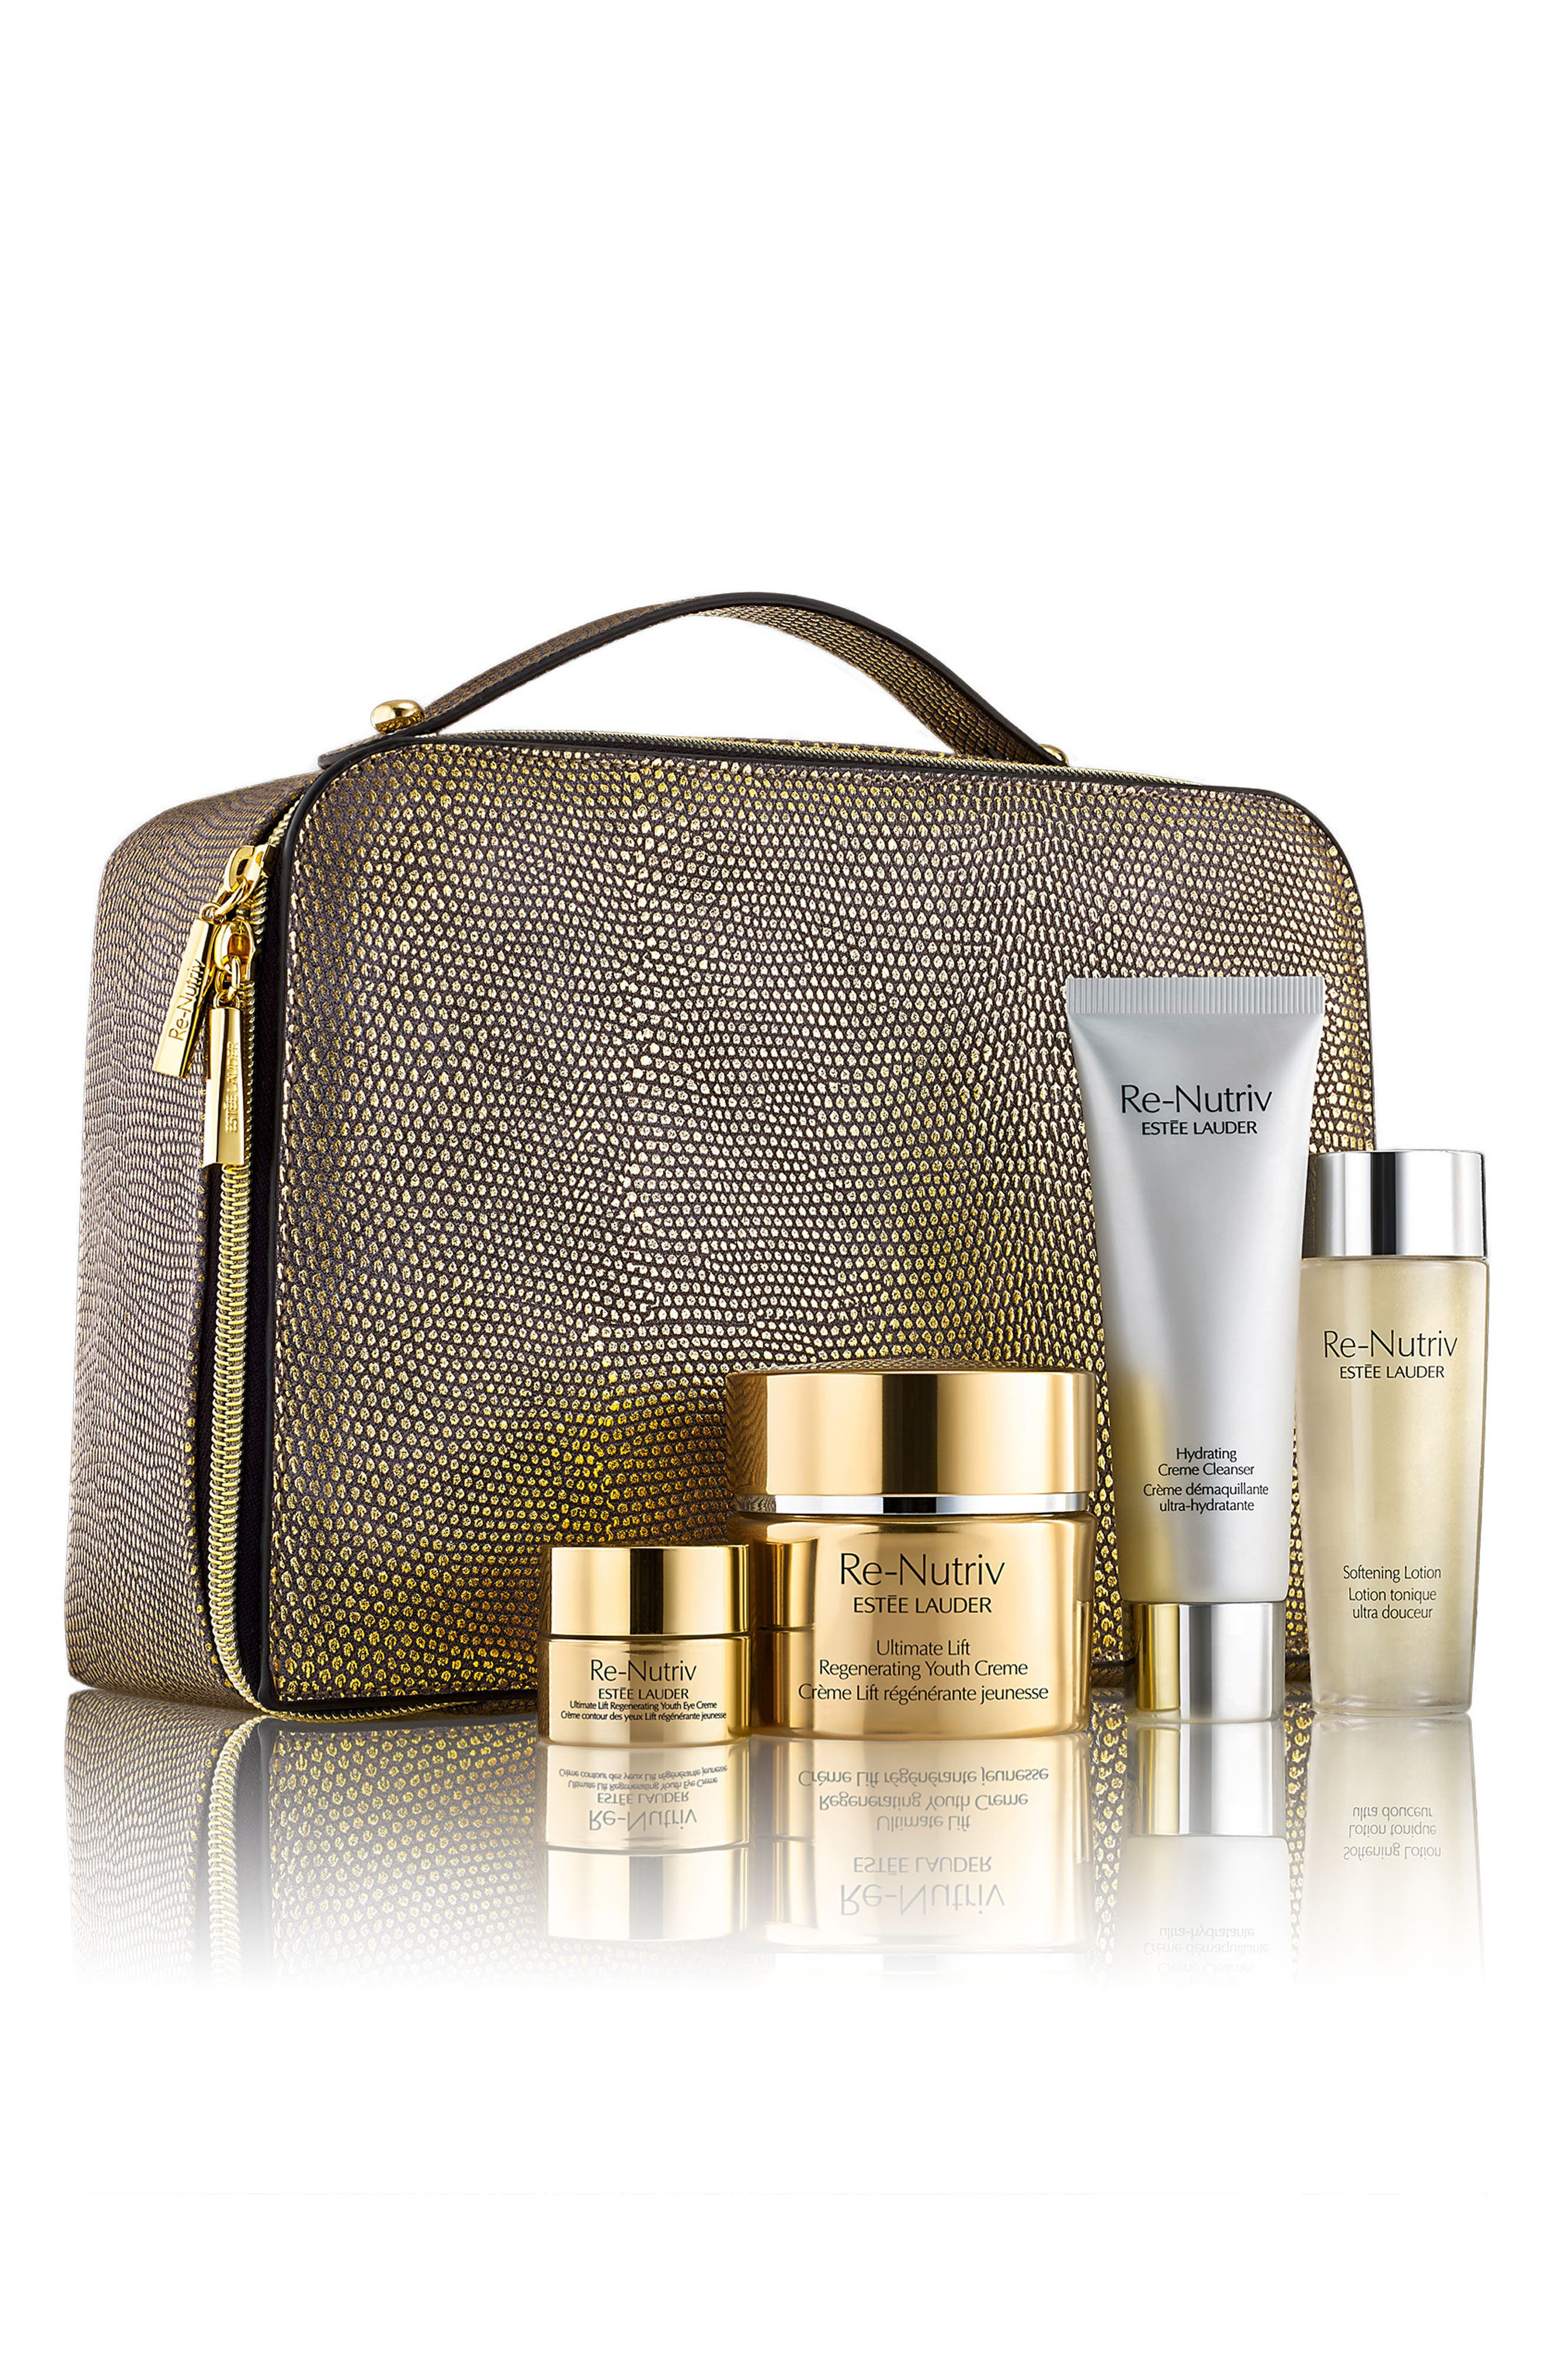 Alternate Image 1 Selected - Estée Lauder The Secret of Infinite Beauty Ultimate Lift Regenerating Youth Collection for Face (Limited Edition) ($470 Value)